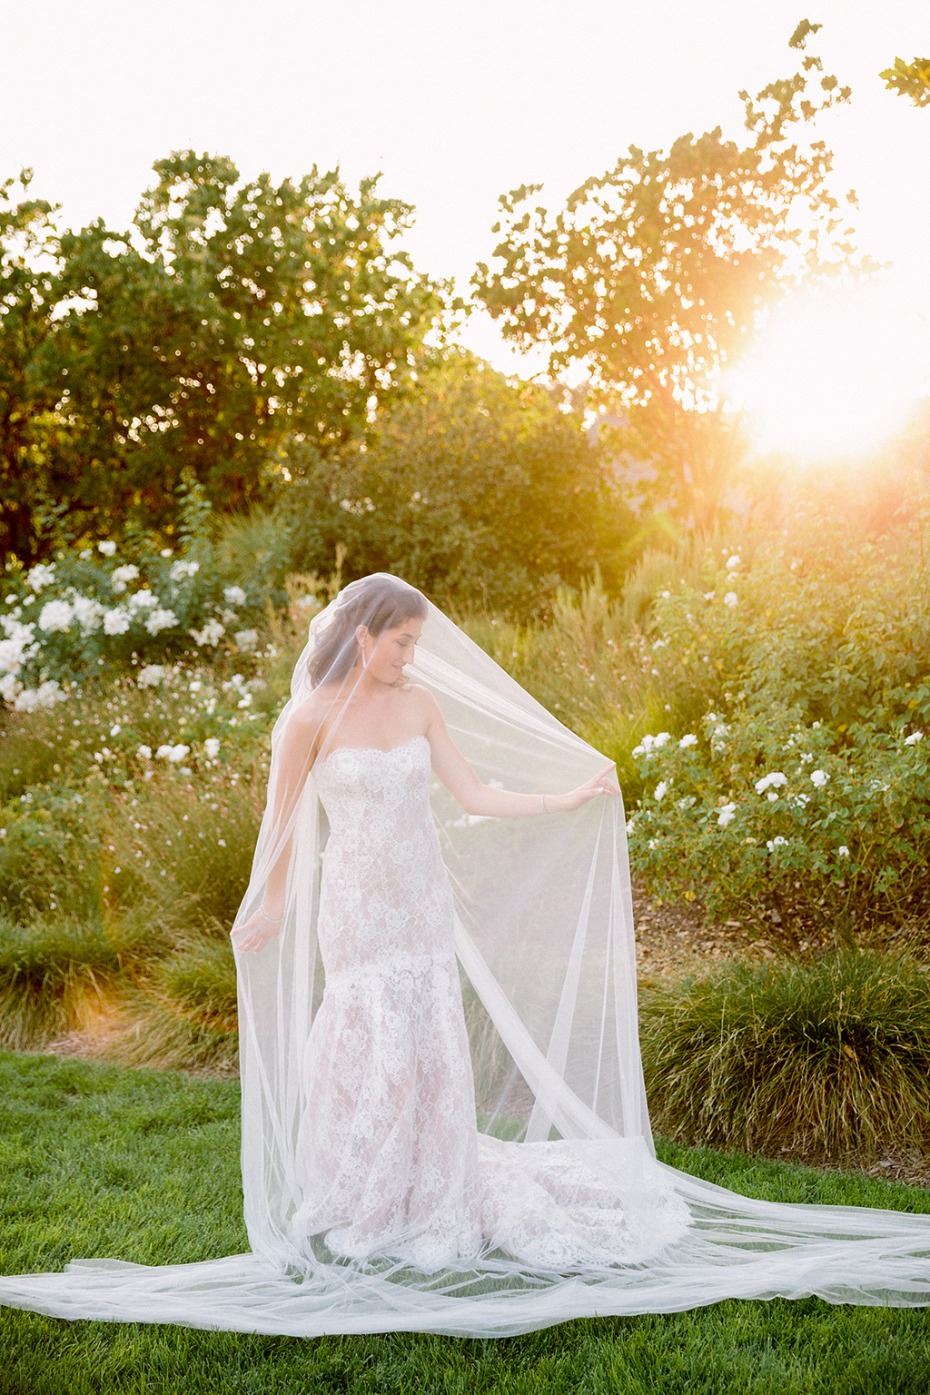 bridal photo ideas with your wedding veil